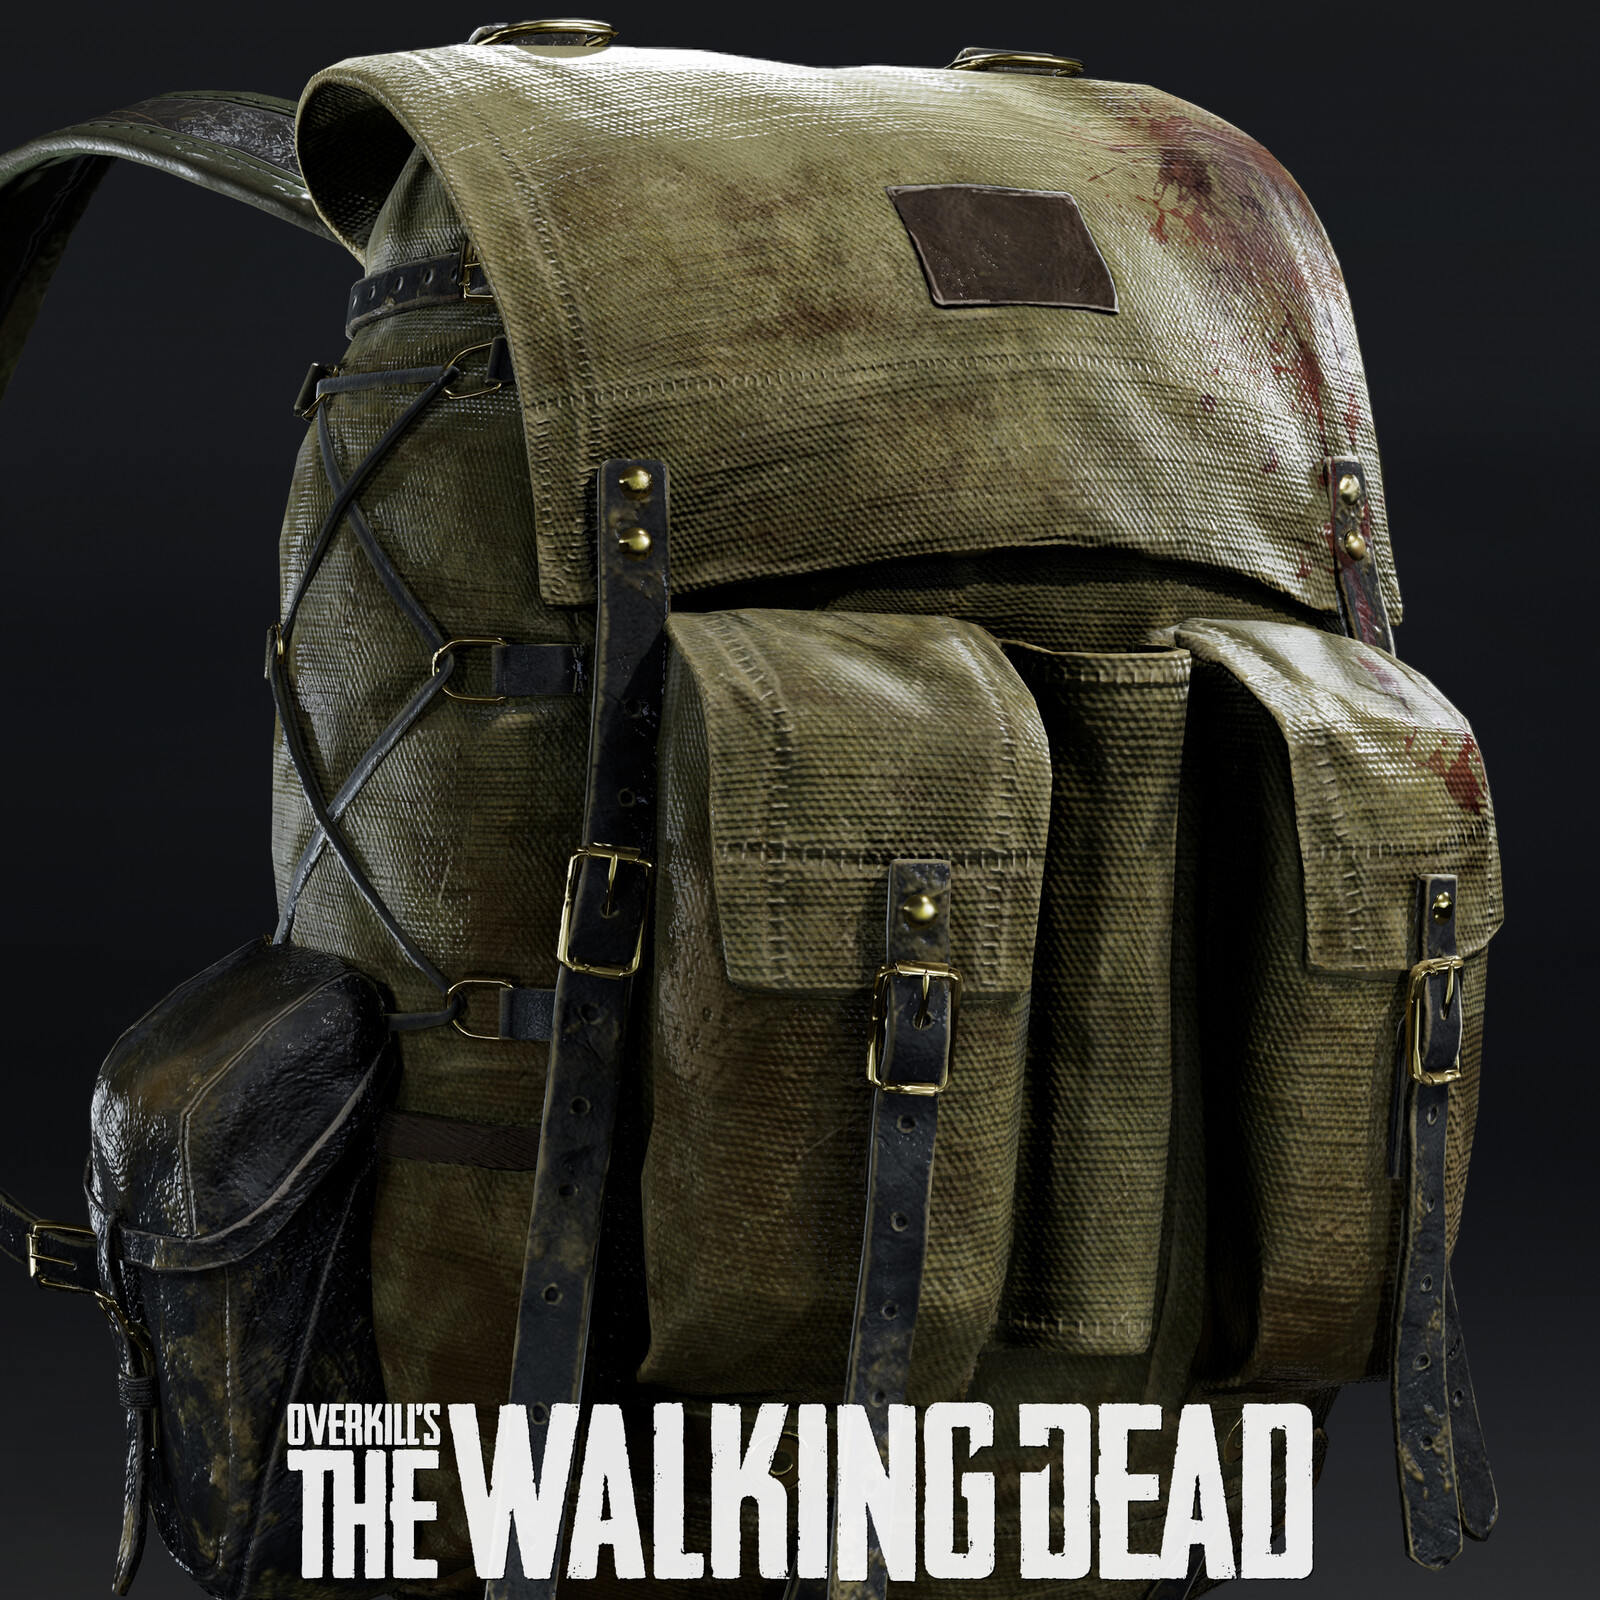 Overkill's The Walking Dead: Character's Backpacks